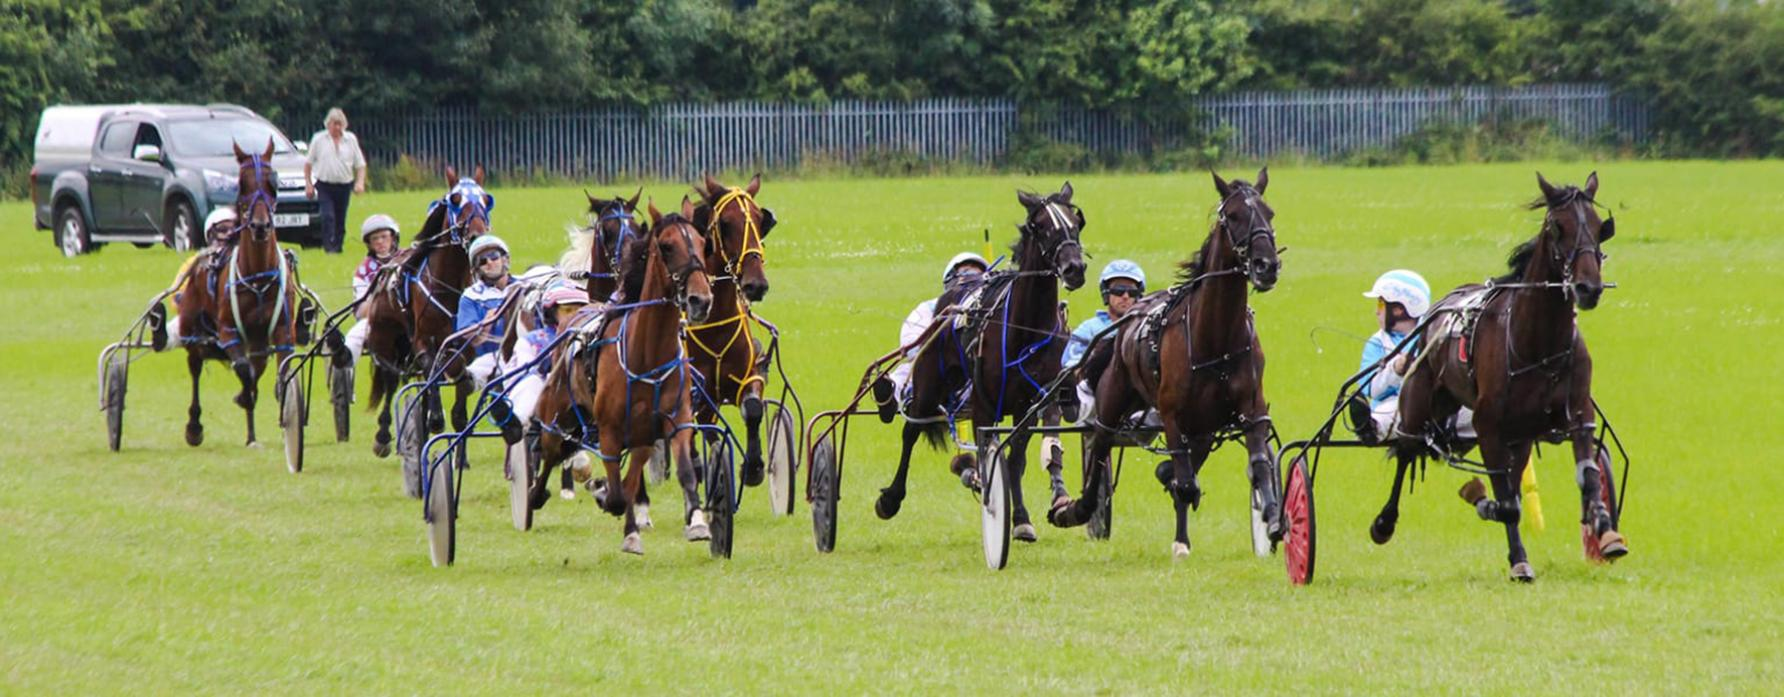 RACING AHEAD: Evenwood's John Henry Nicholson, from Evenwood, leads the way in one of last year's harness races at Binchester